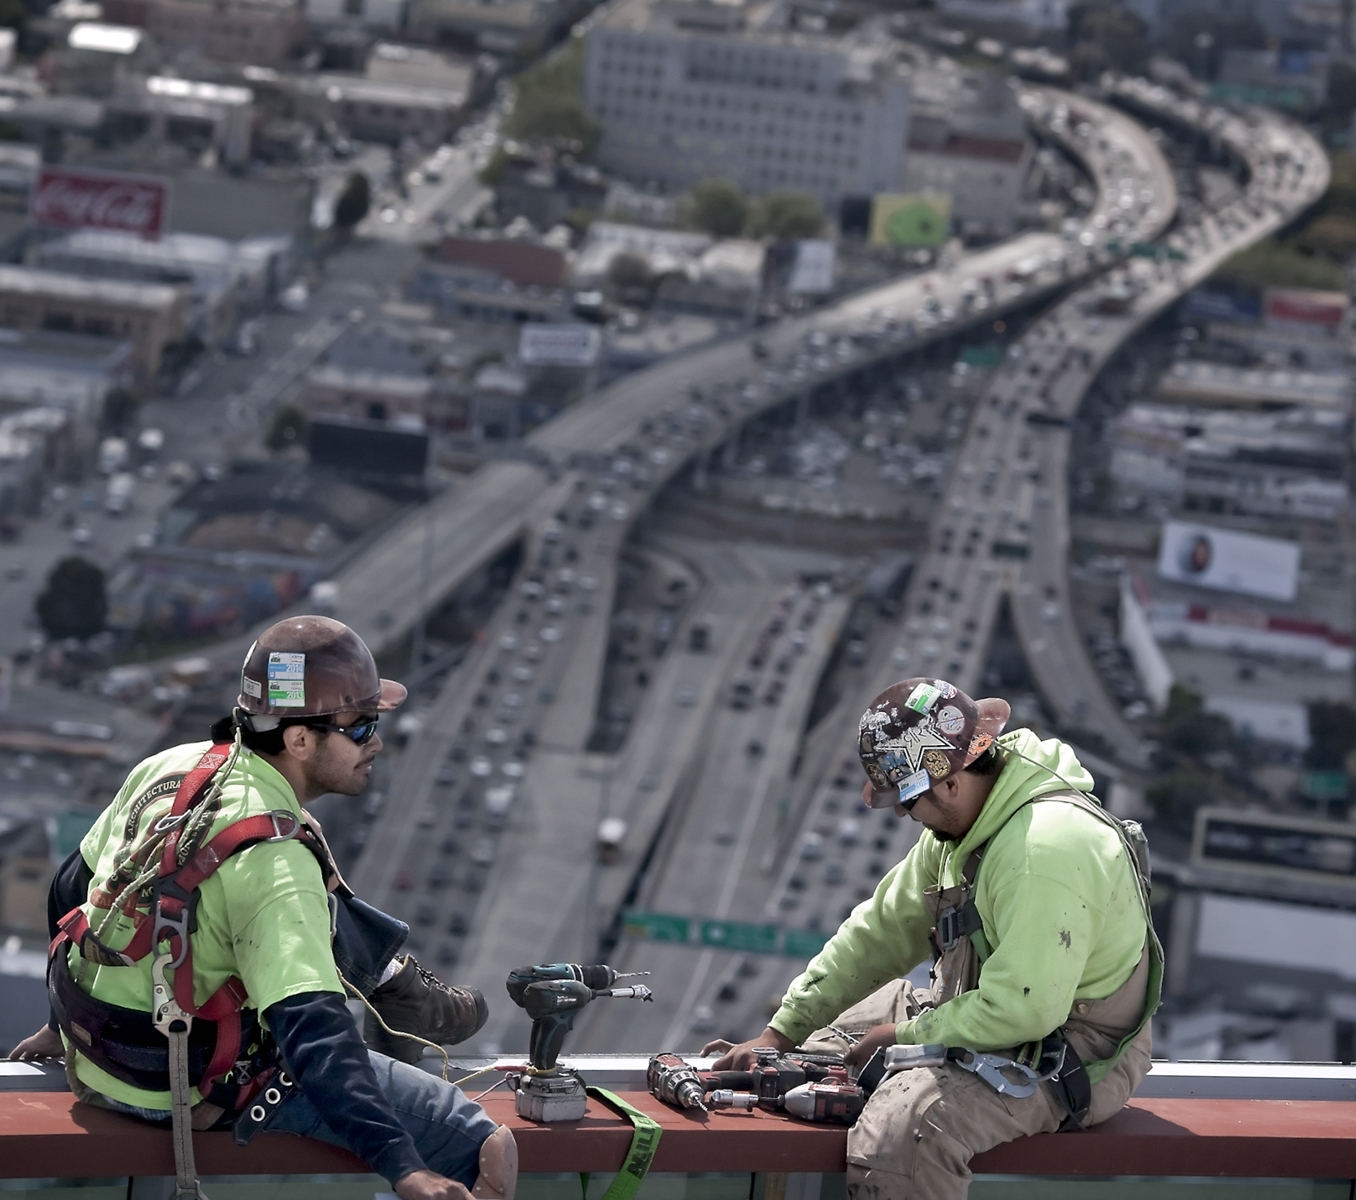 Construction-workers-strapped-in-with-safety-harnesses-atop-One-Rincon-Hill-North-Tower-JA-Best-in-Show-by-Adrian-Mendoza-SR